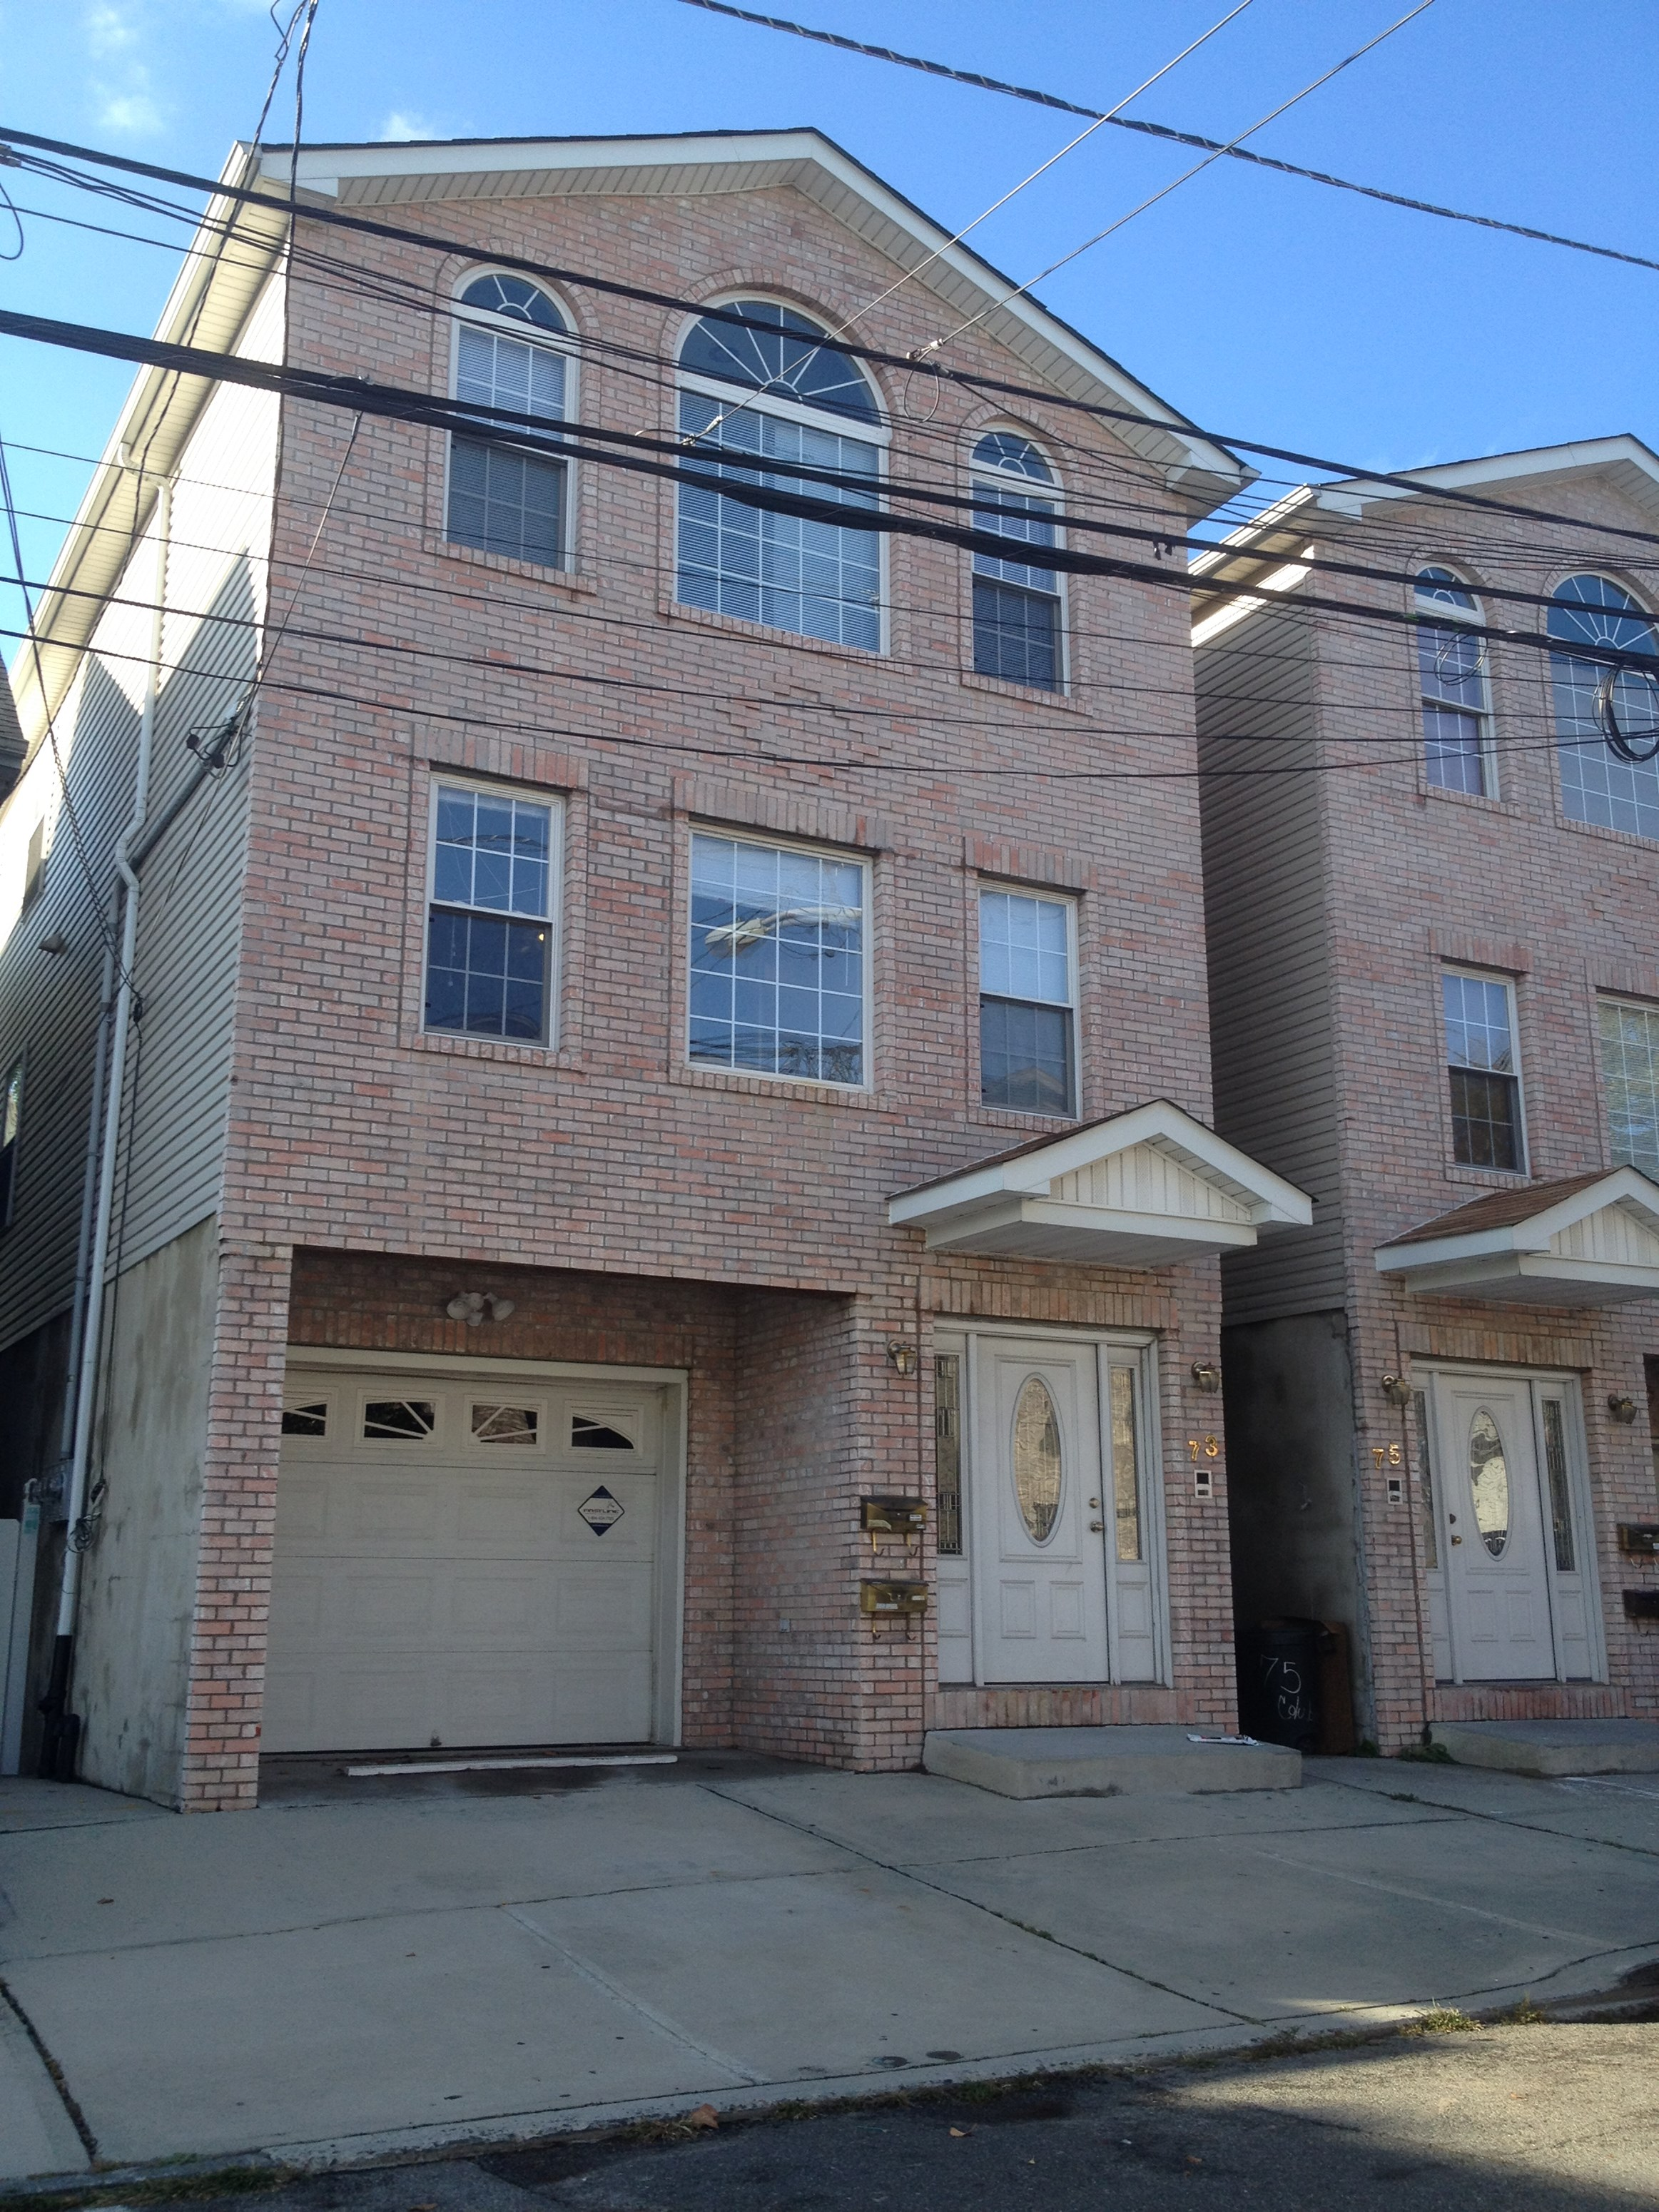 House For Rent In Jersey City Nj Apartments Flats